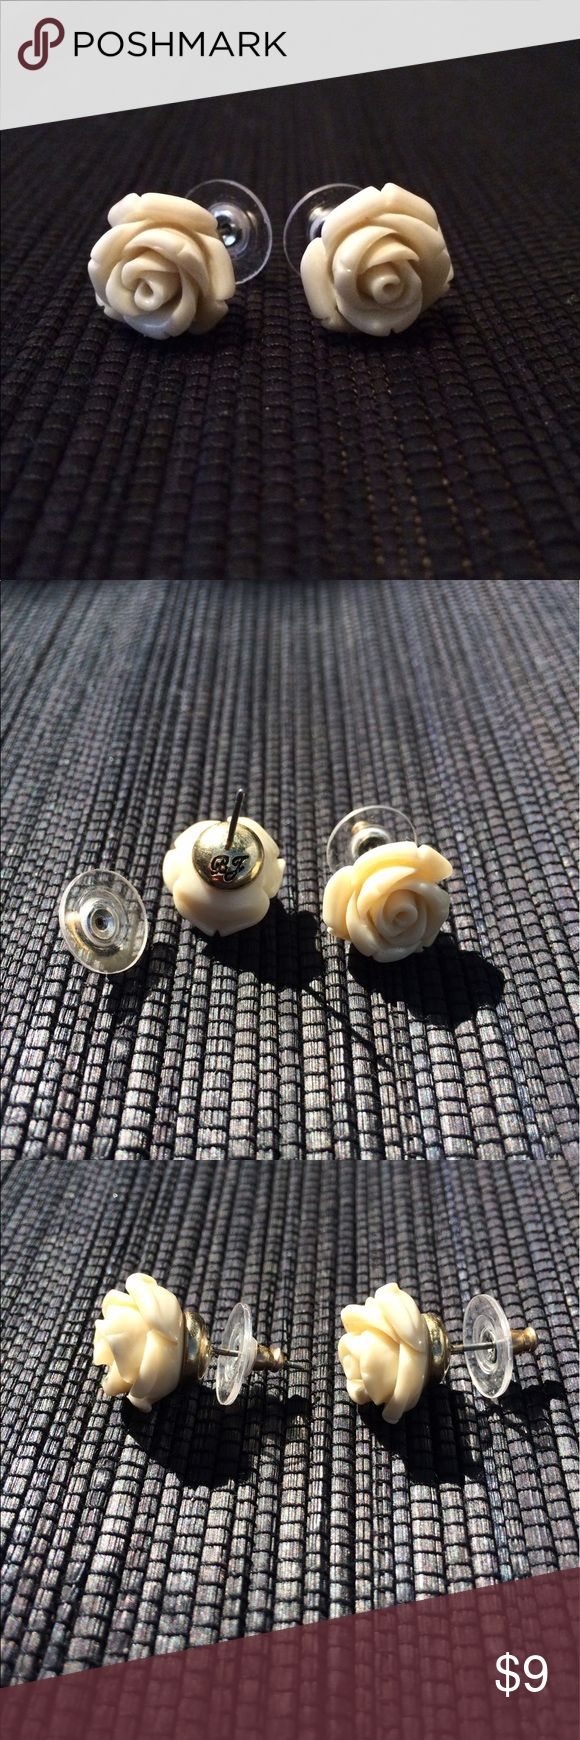 Betsey Johnson Ivory Rose Stud Earrings